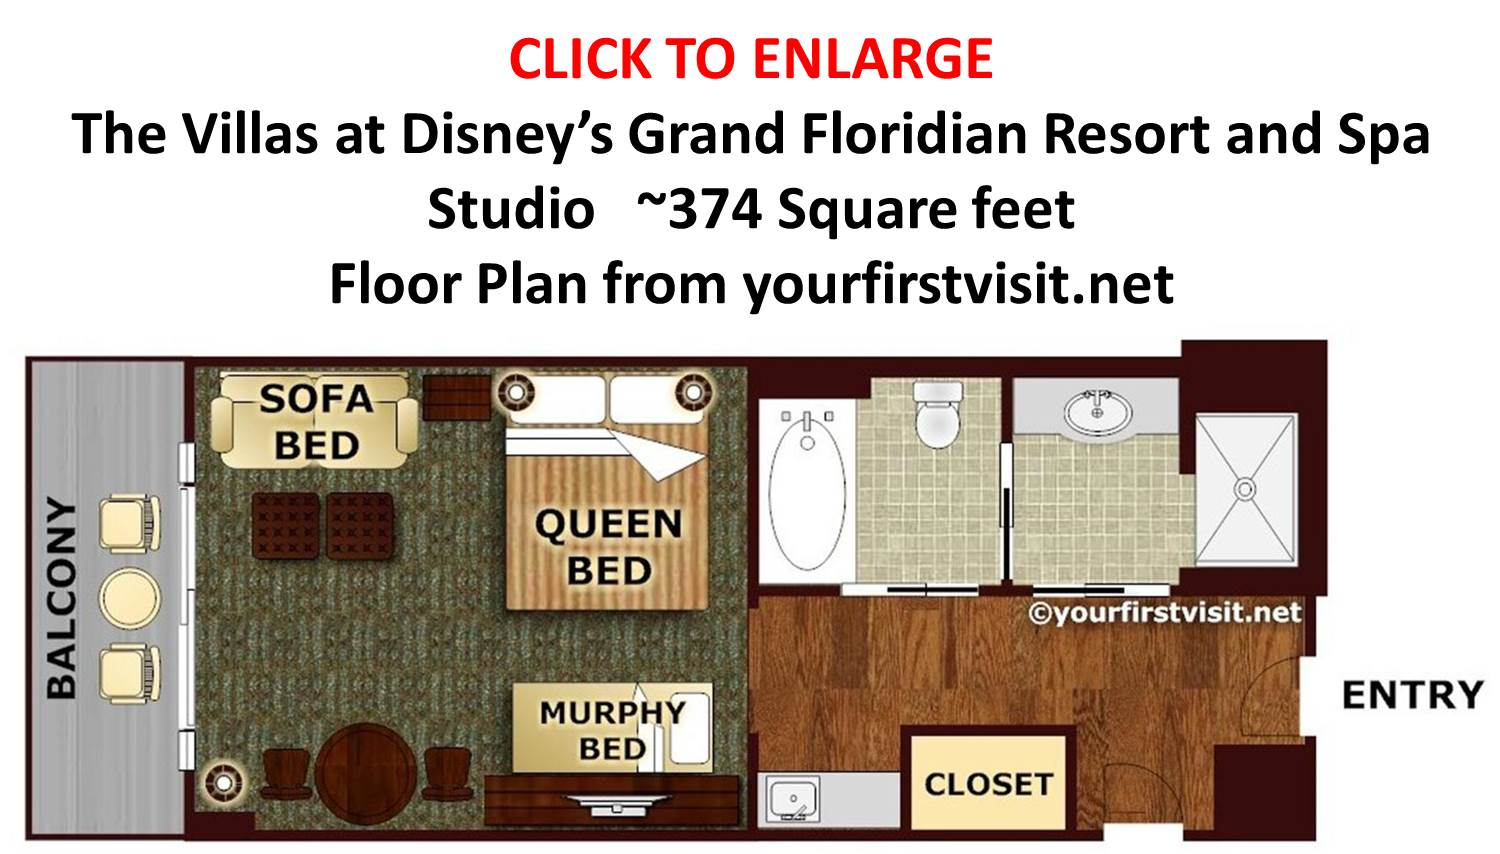 Old Key West 1 Bedroom Villa Floor Plan Review The Villas At Disney S Grand Floridian Resort